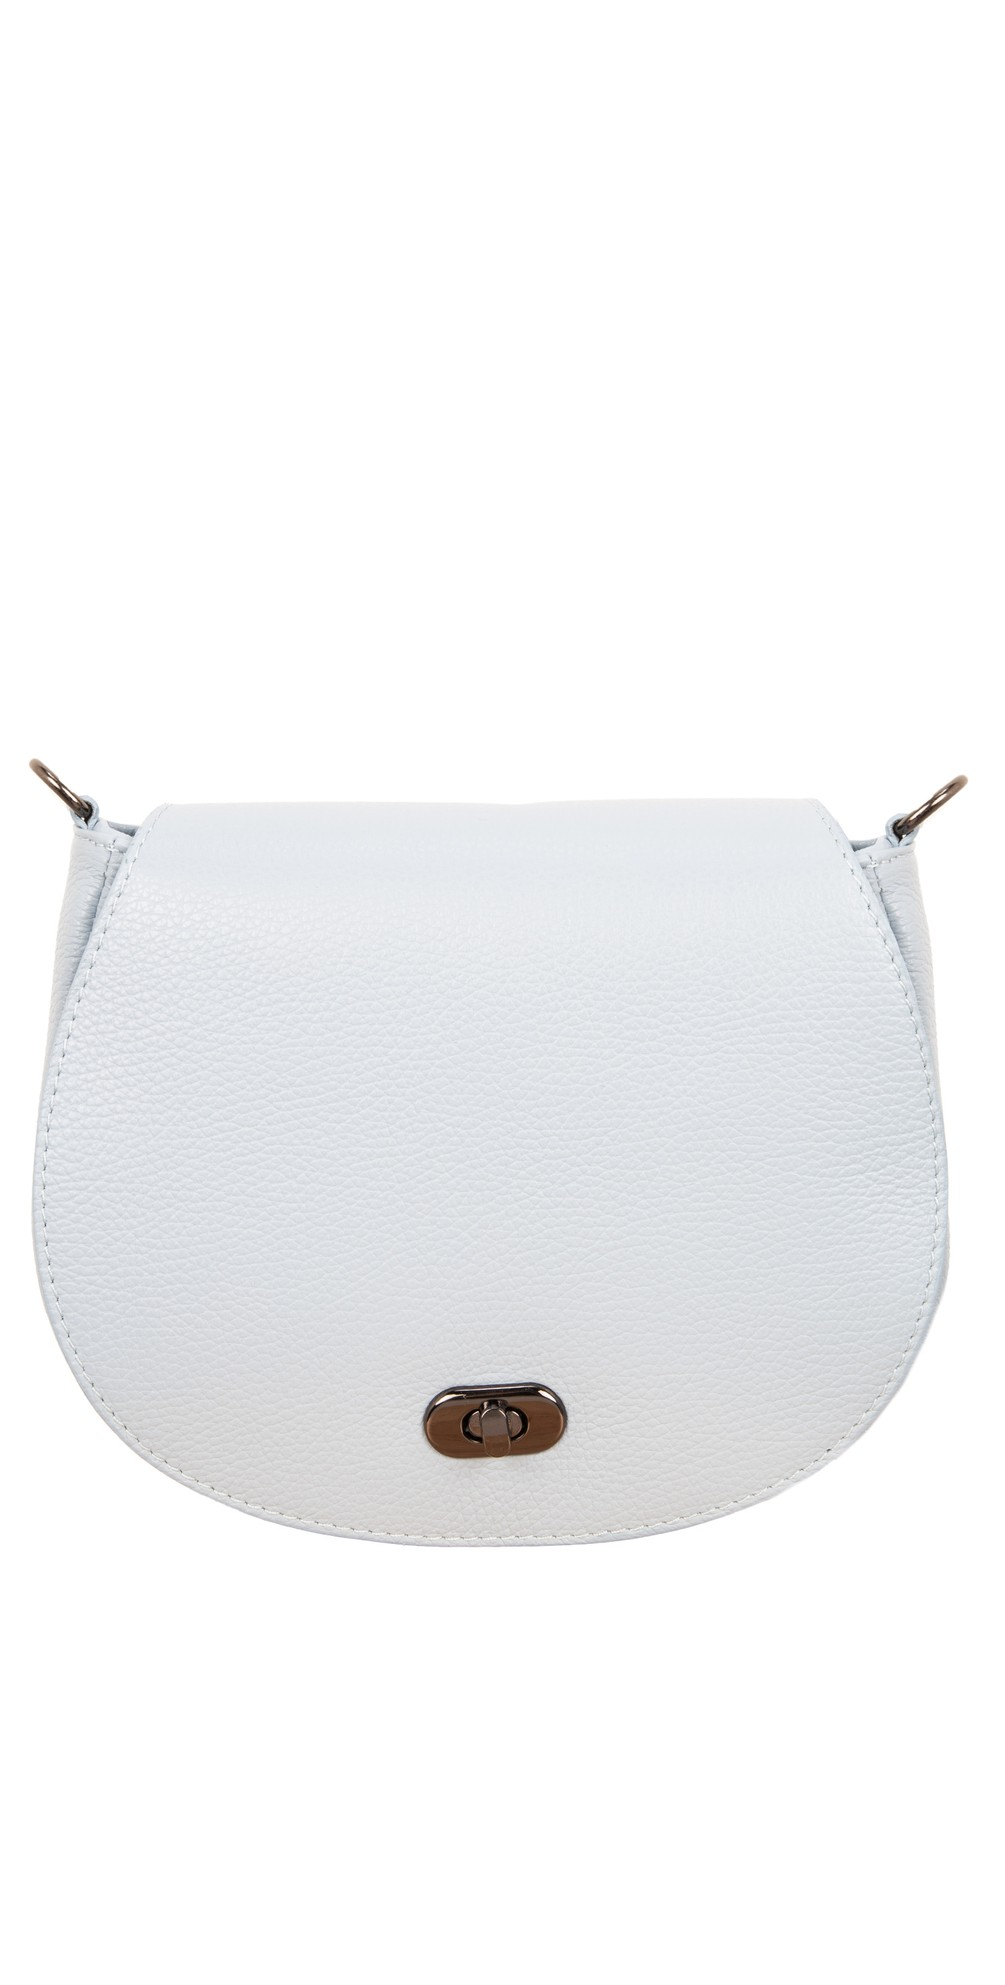 Amber Leather Shoulder bag main image